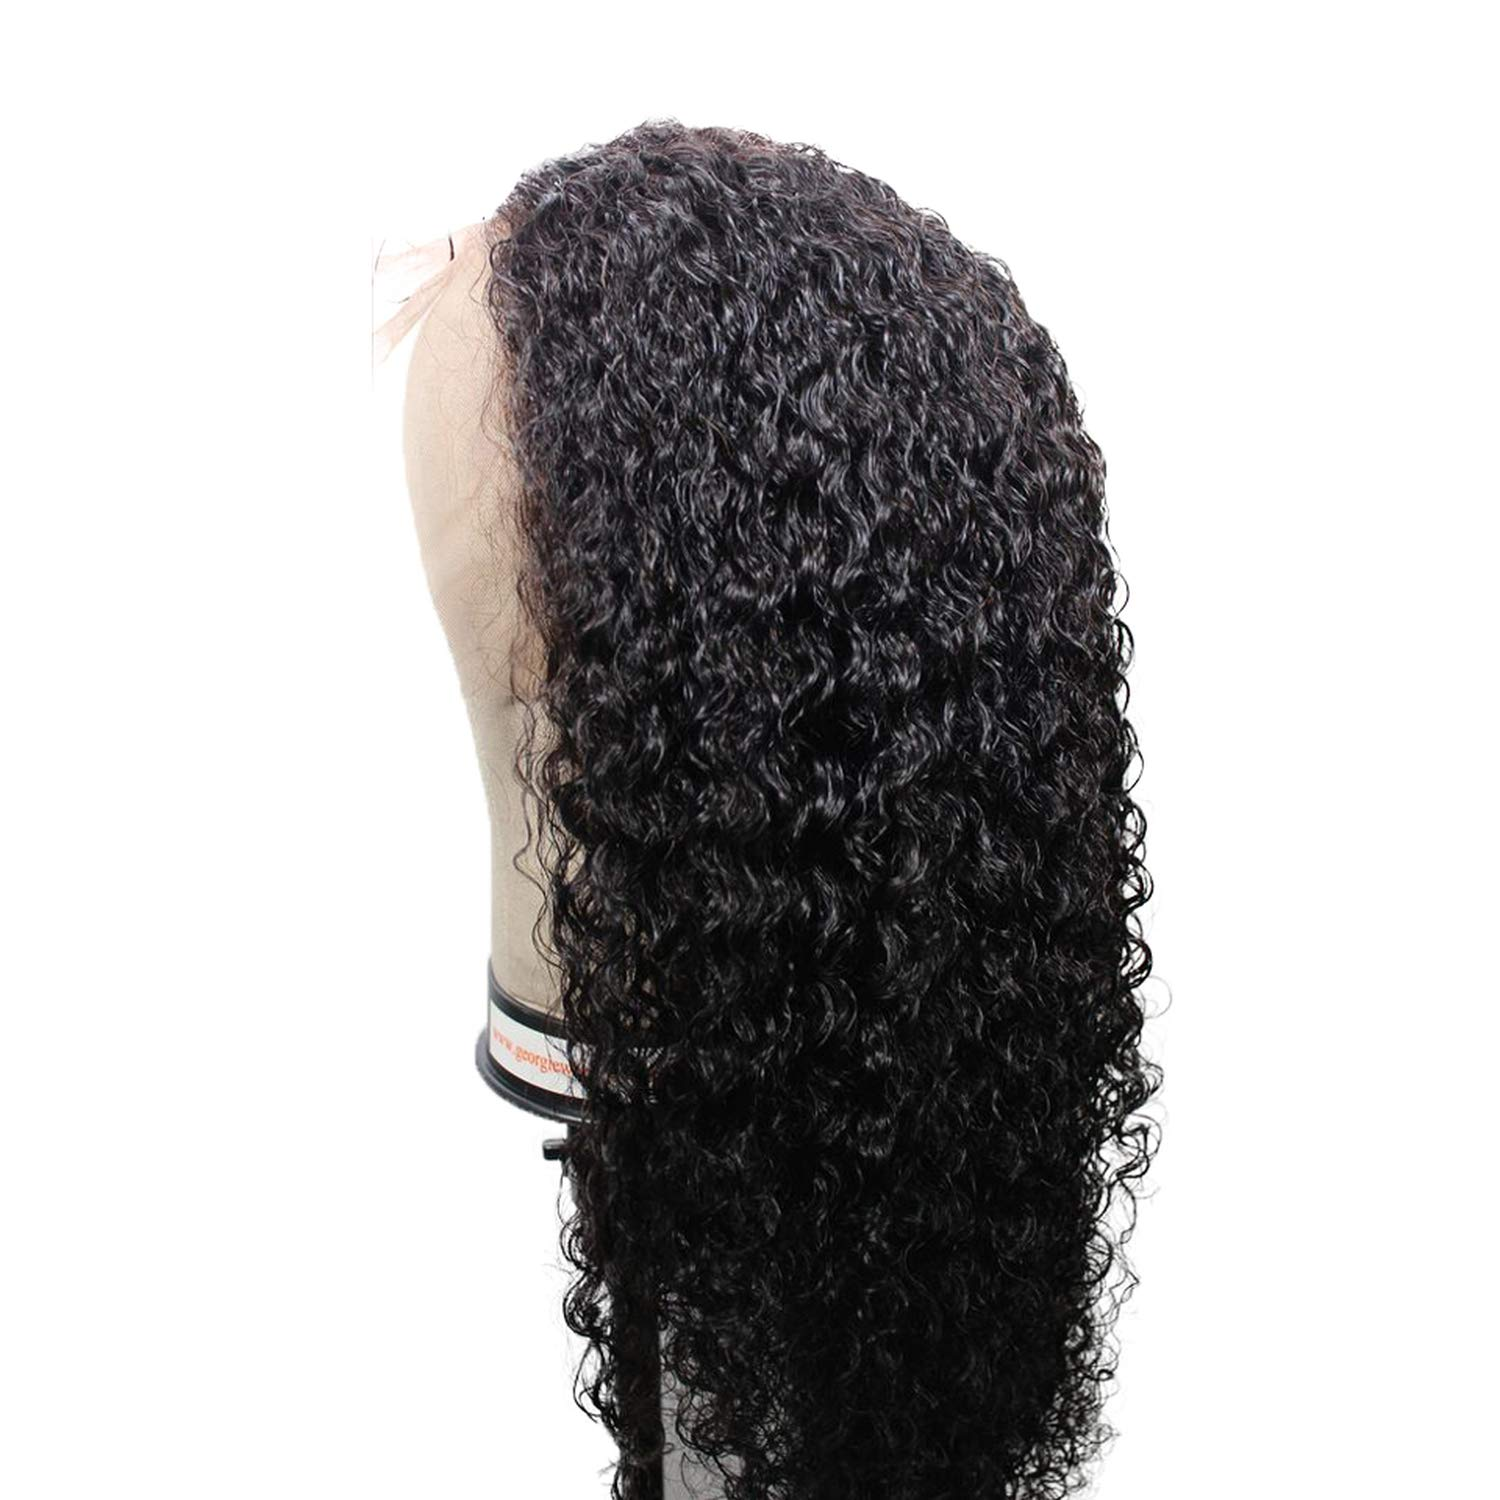 180% Density 13X6 Lace Front Human Hair Wigs 6inch Deep Parting For Black Women Natural Brazilian Curly Human Hair Wigs,20inches